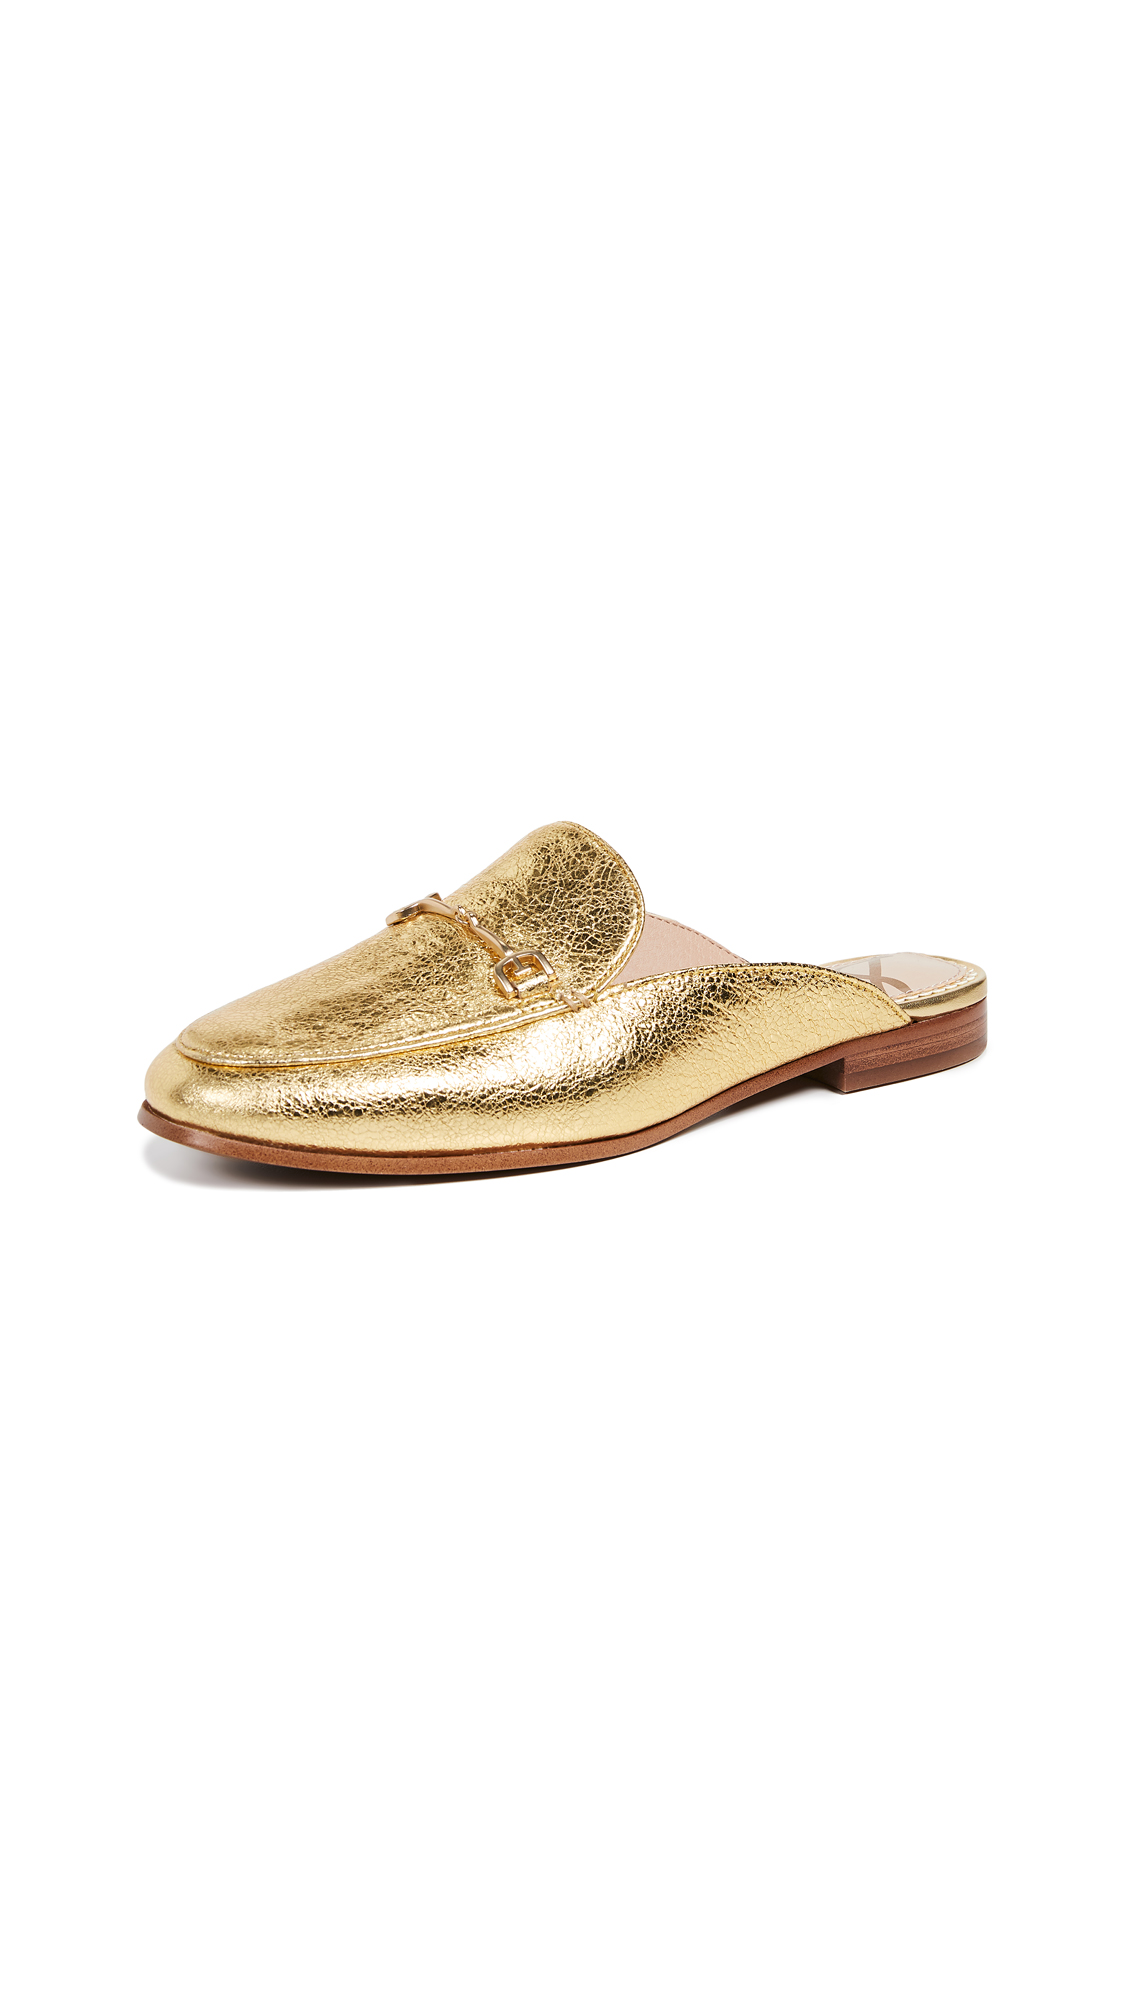 Sam Edelman Linnie Mules - Bright Gold